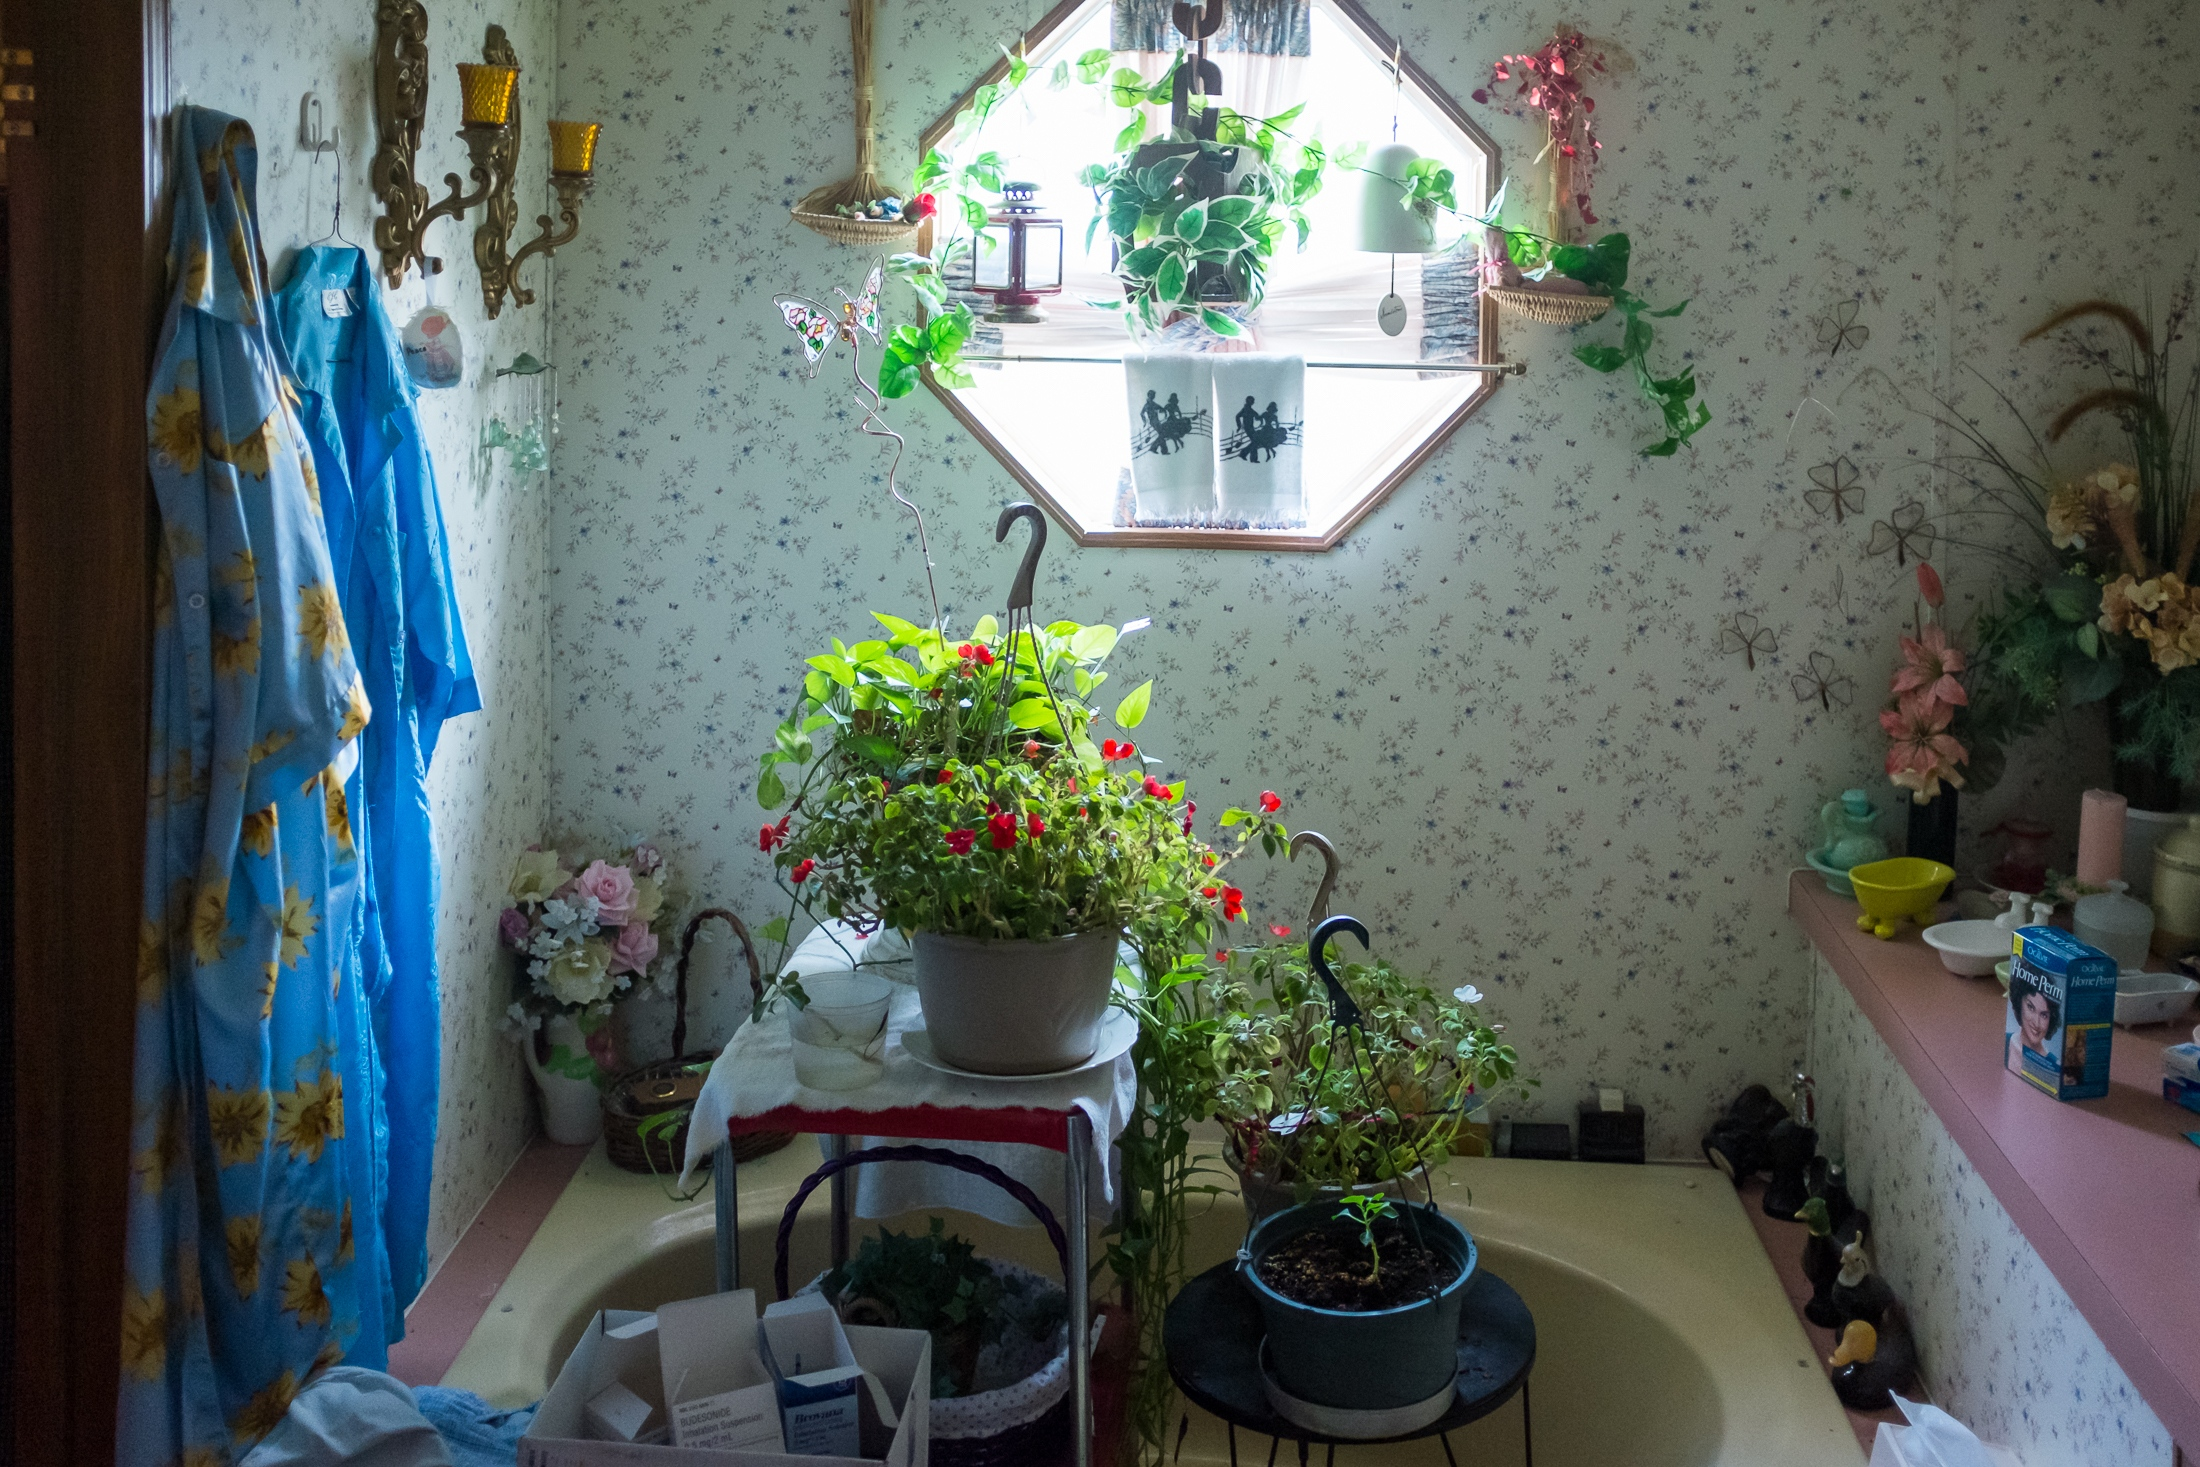 Mary keeps some of her indoor plants inside her bathroom.